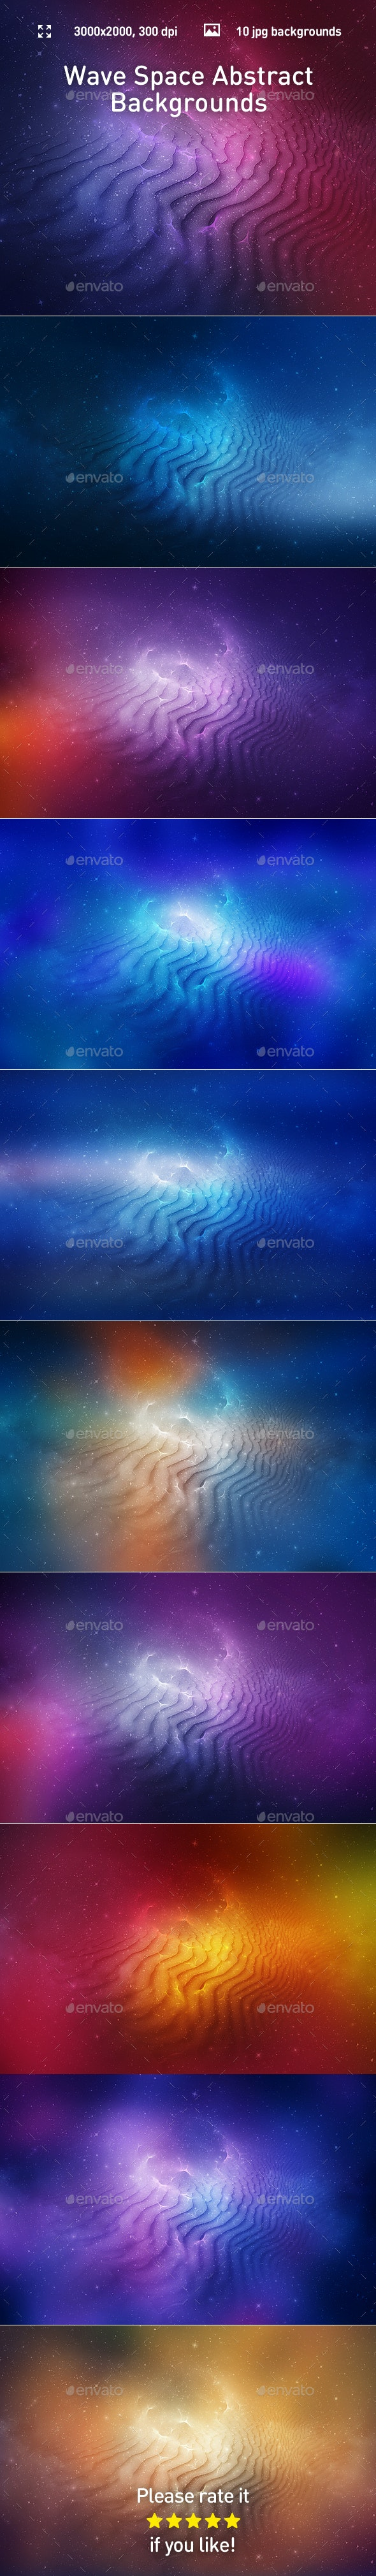 Space Abstract Backgrounds - Abstract Backgrounds